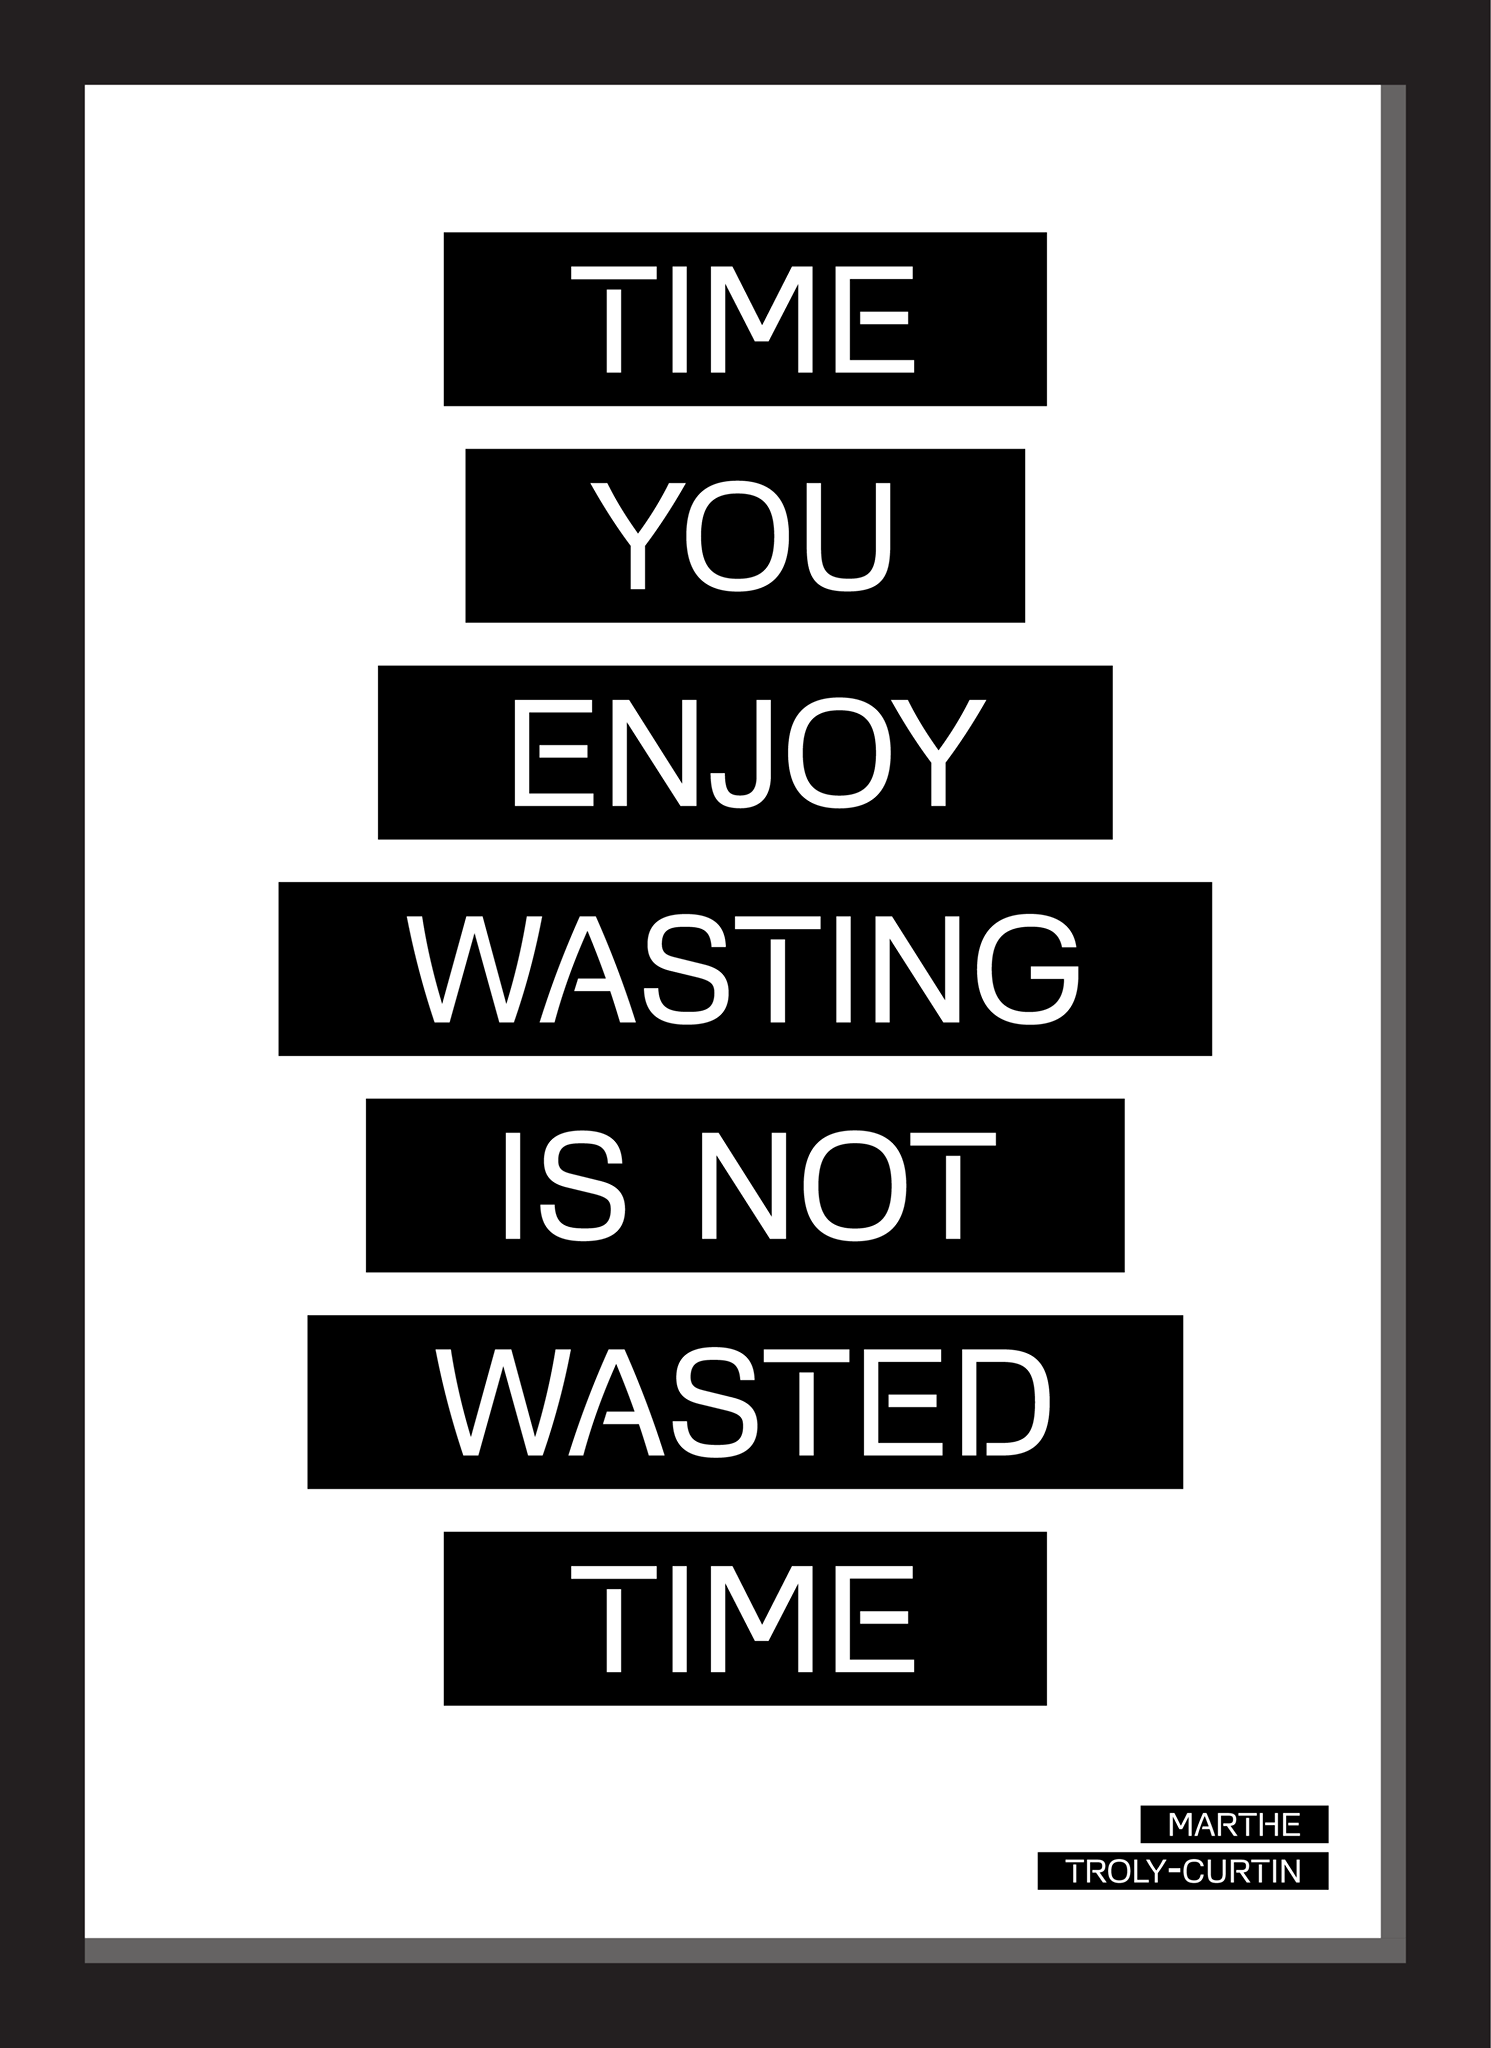 Time You Enjoy Wasting Is Not Wasted Time Marthe Troly Curtin Jump Quotes Wise Words Inspirational Quotes Motivation